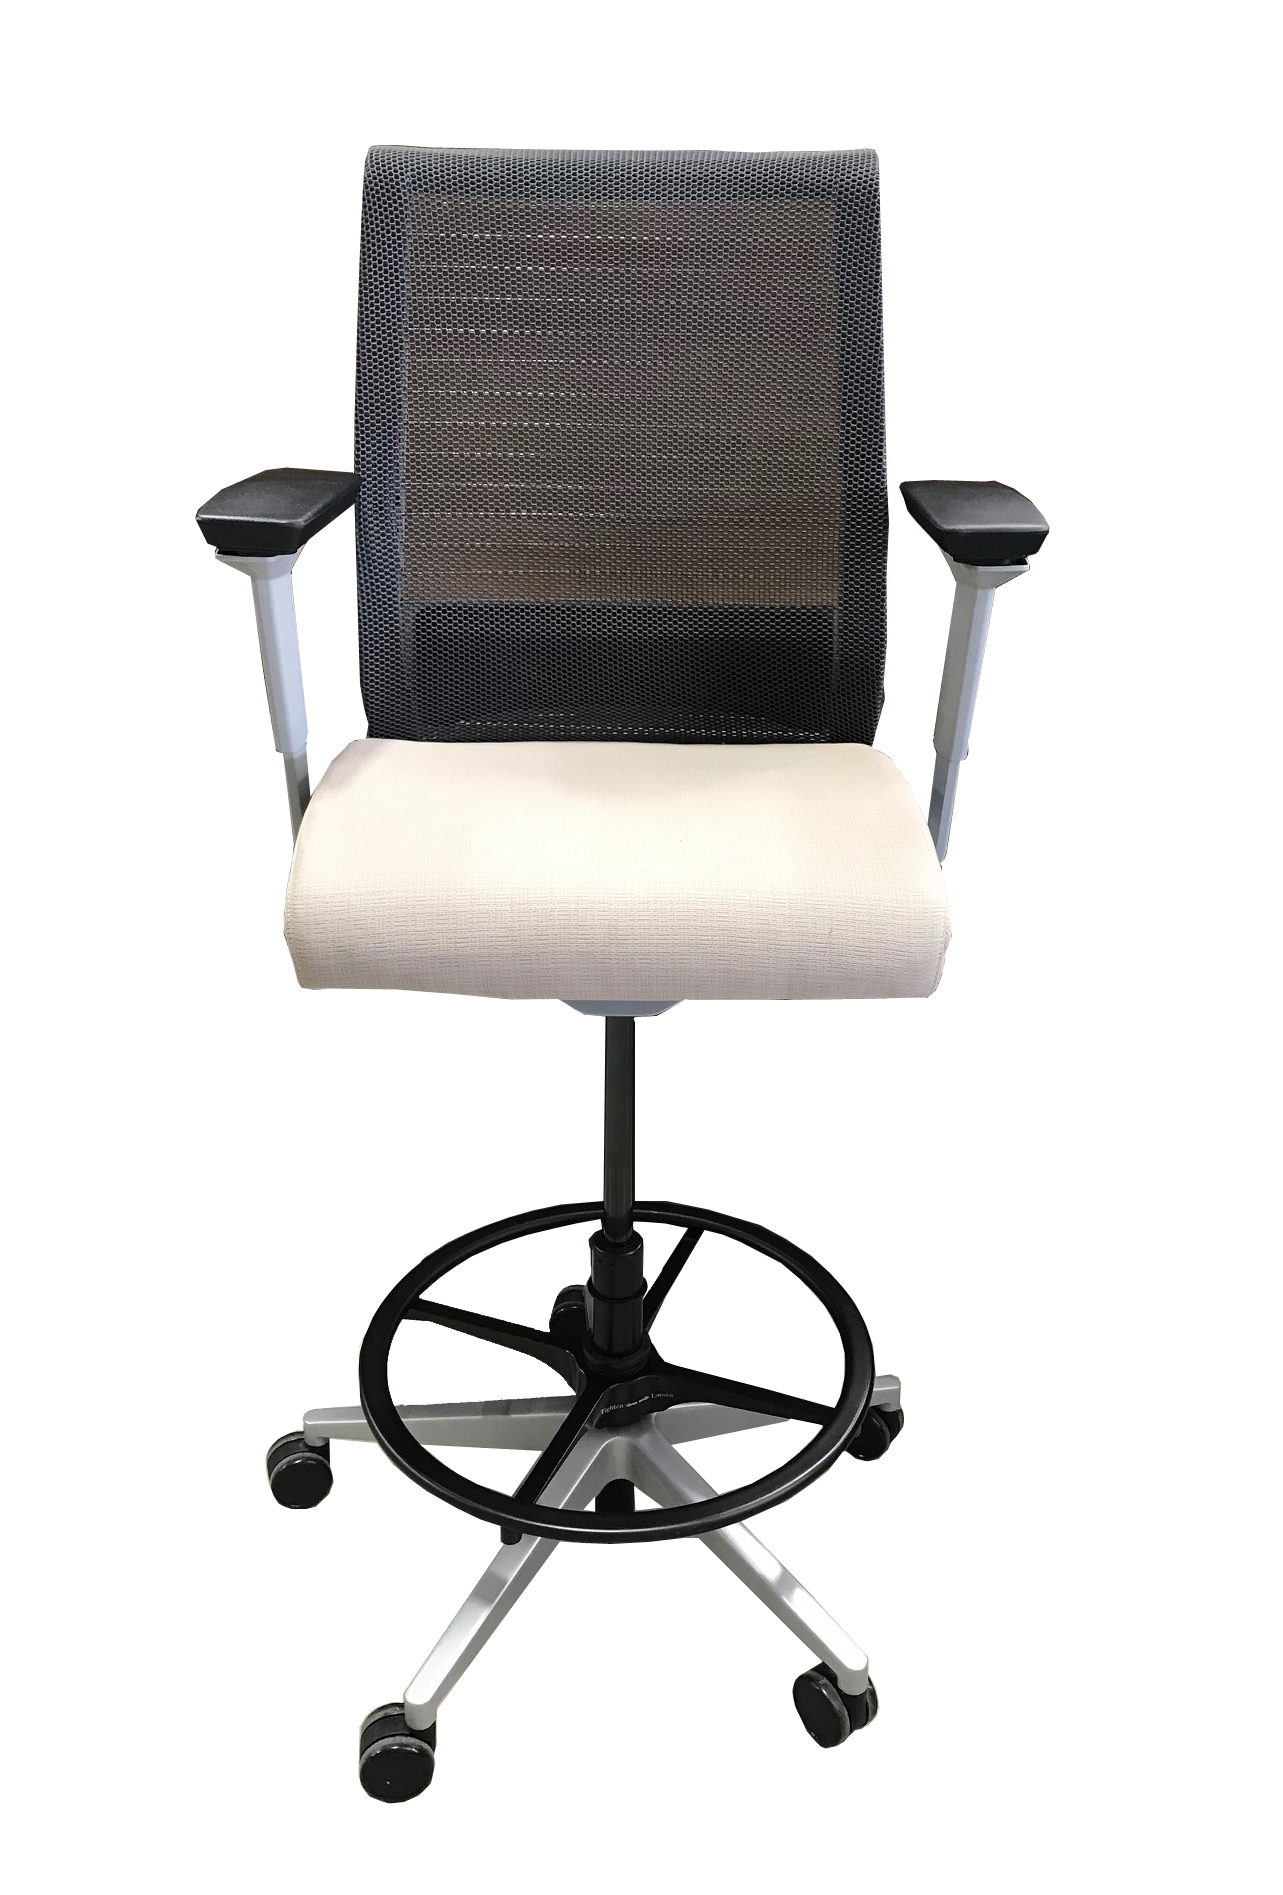 office drafting chair. Think Steelcase Used Drafting Stool Office Chair A